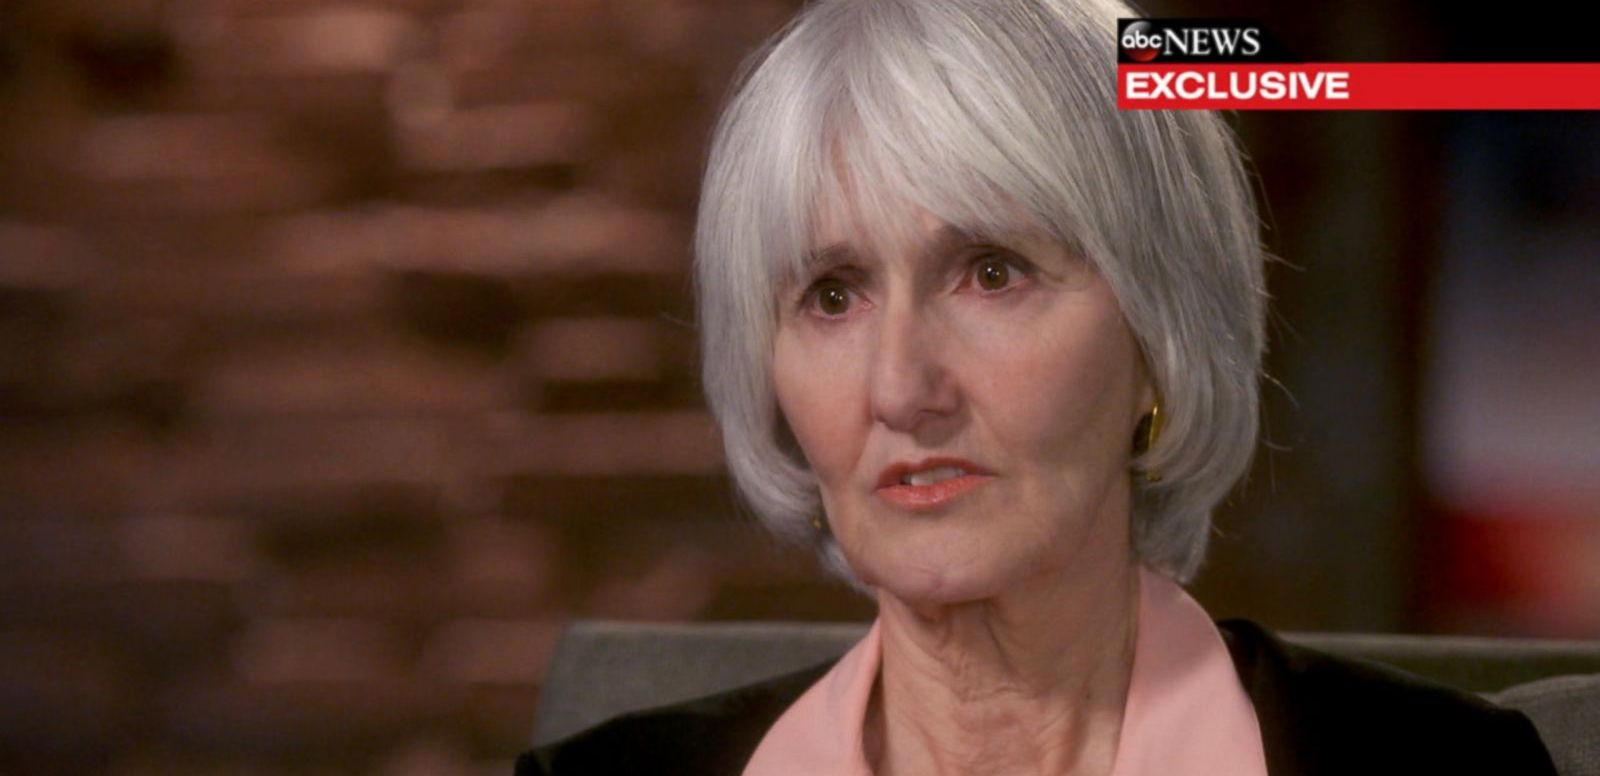 VIDEO: Columbine Shooter's Mother Sue Klebold Speaks Out